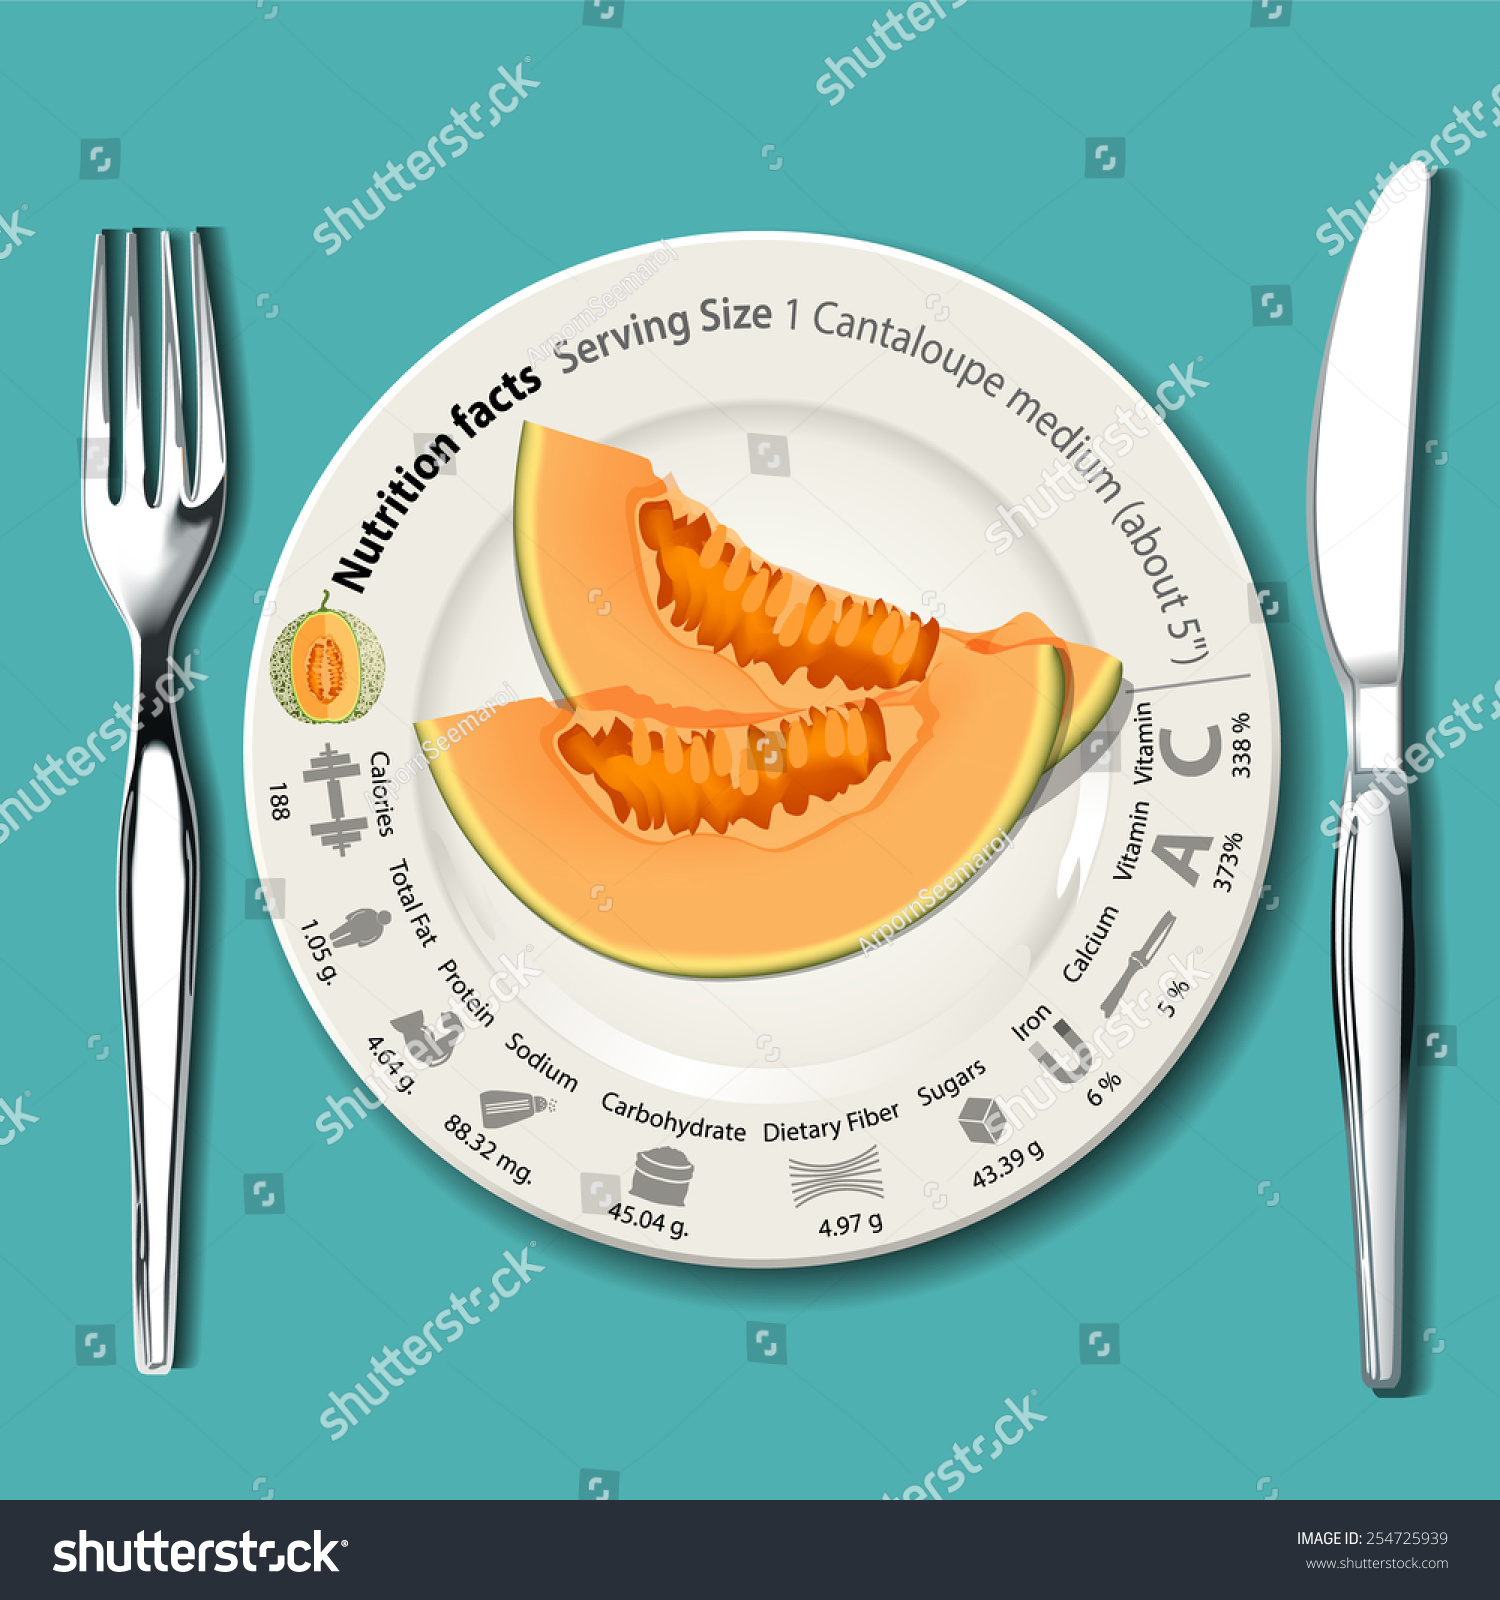 Vector Info Graphic Nutrition Facts Cantaloupe Stock Vector Royalty Free 254725939 Eating cantaloupe may bring a number of health benefits. shutterstock